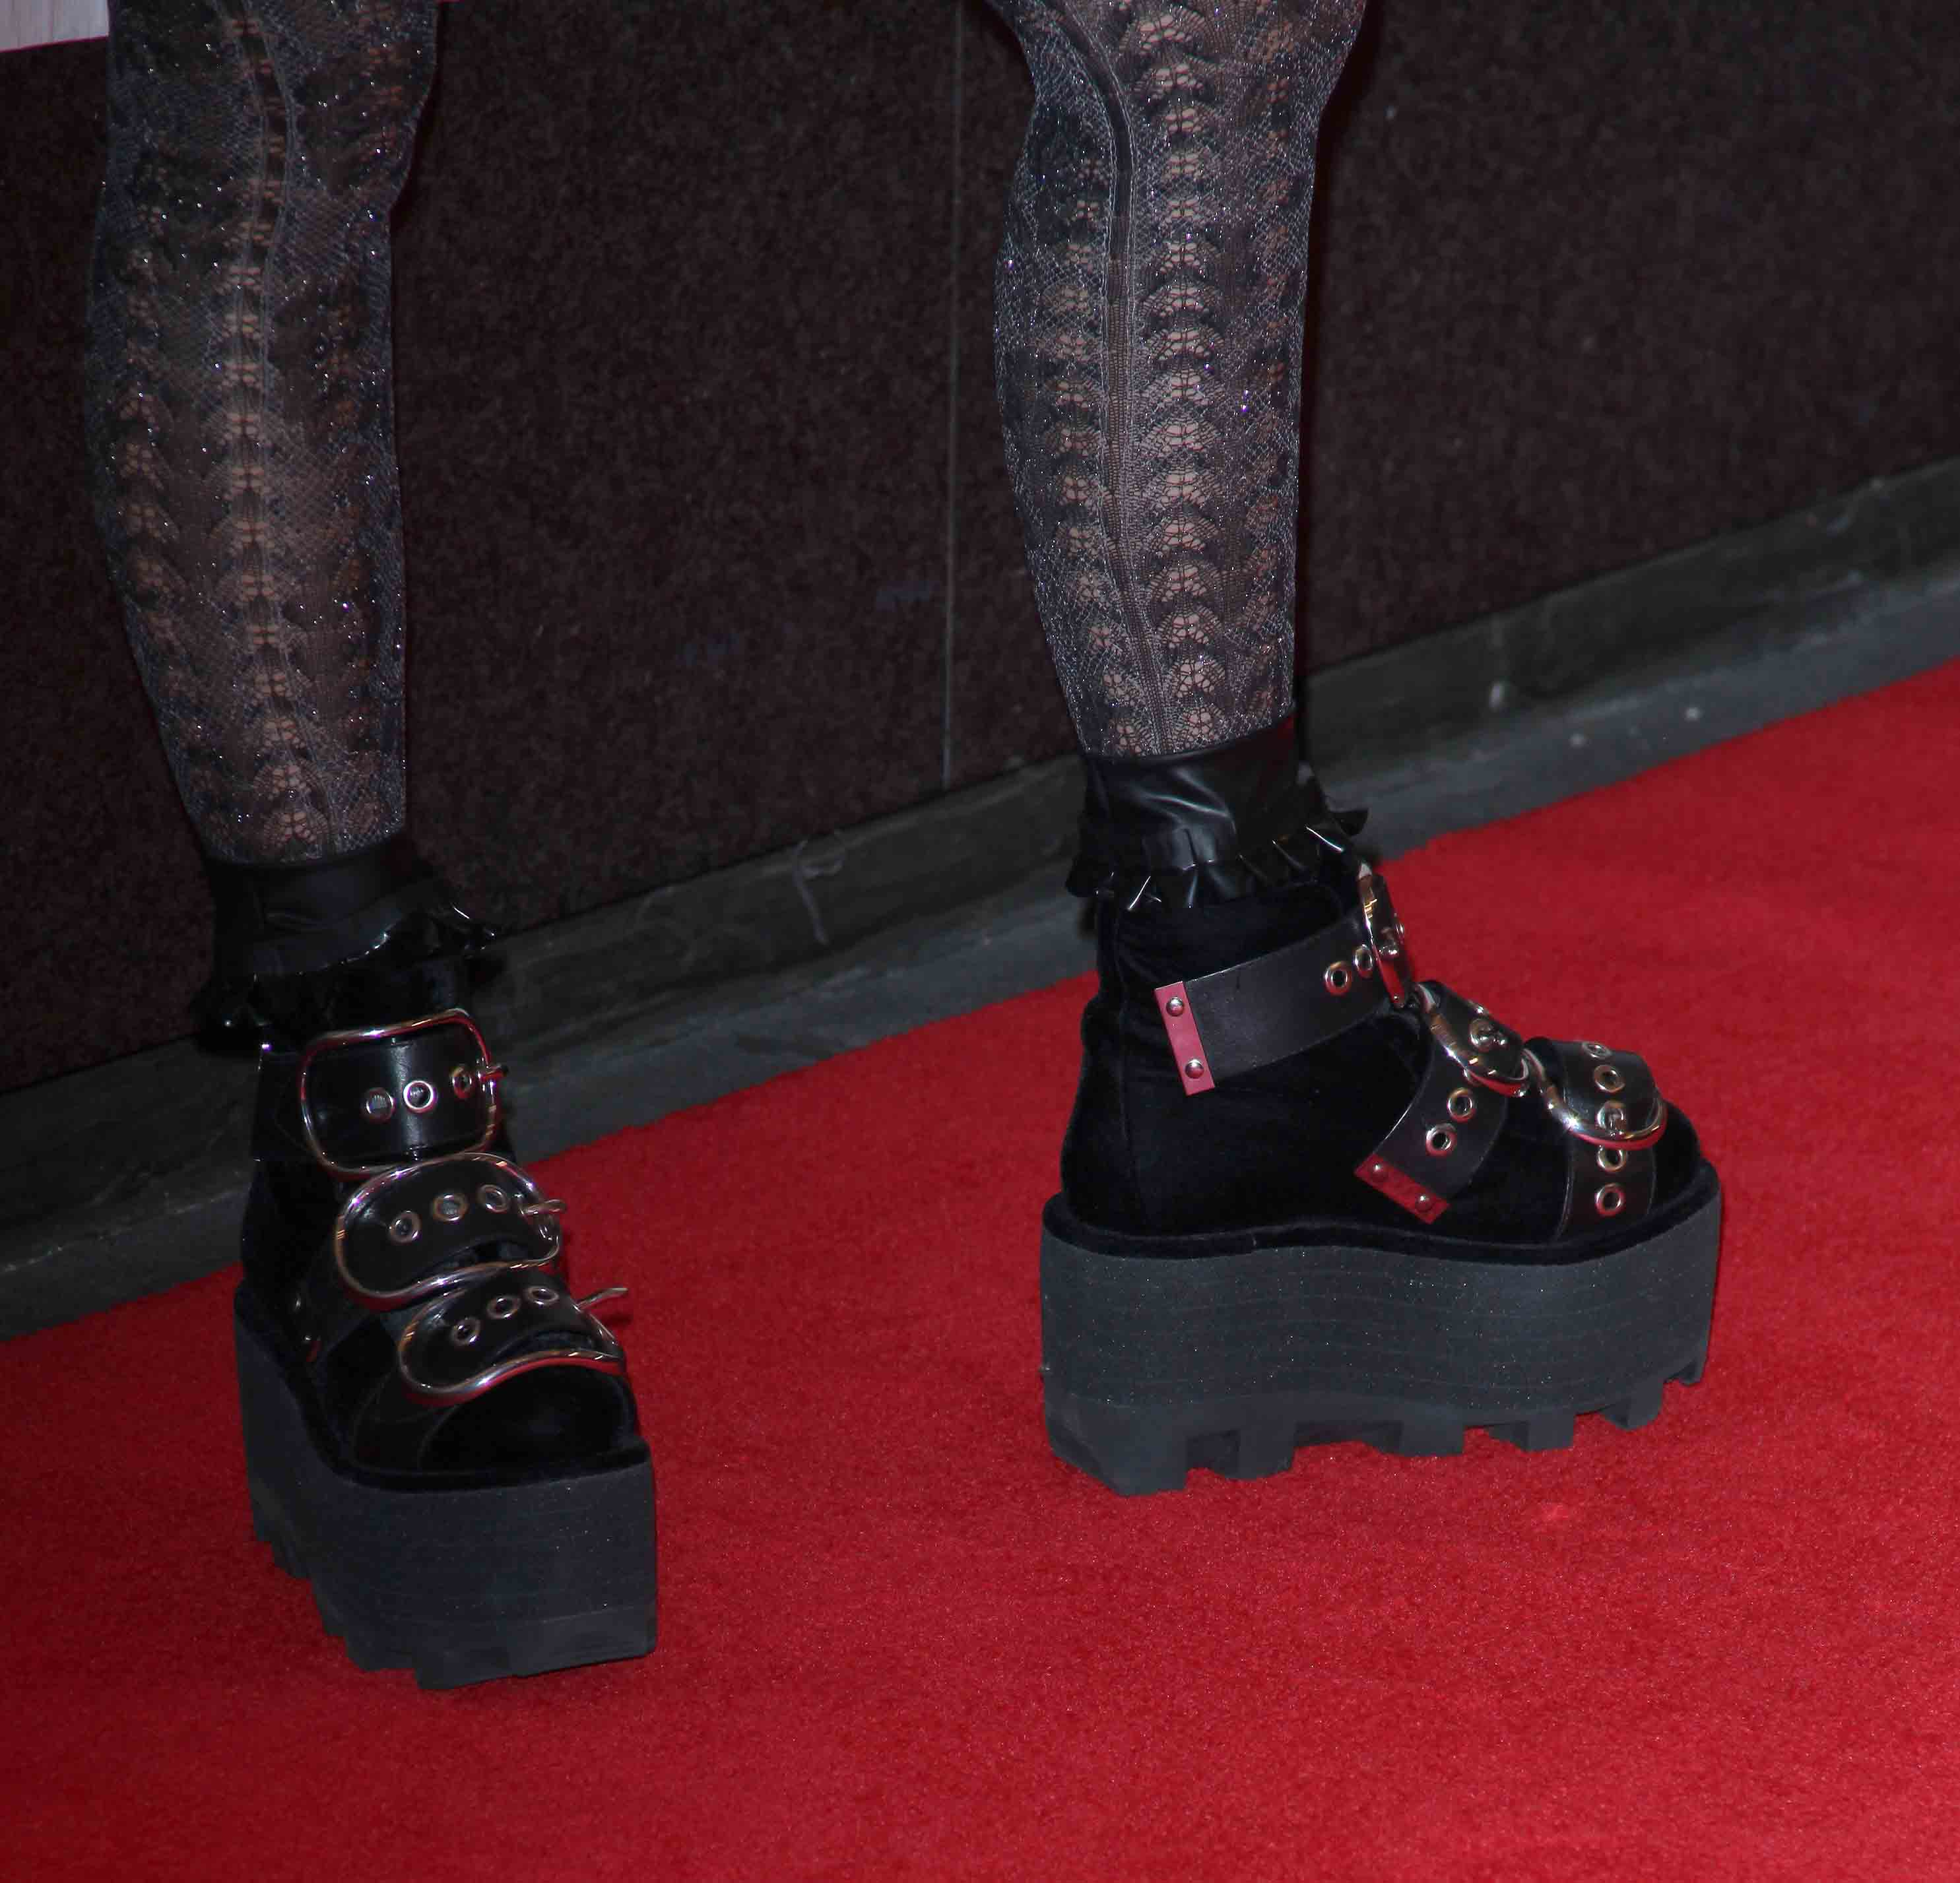 Lady gaga's platform shoes